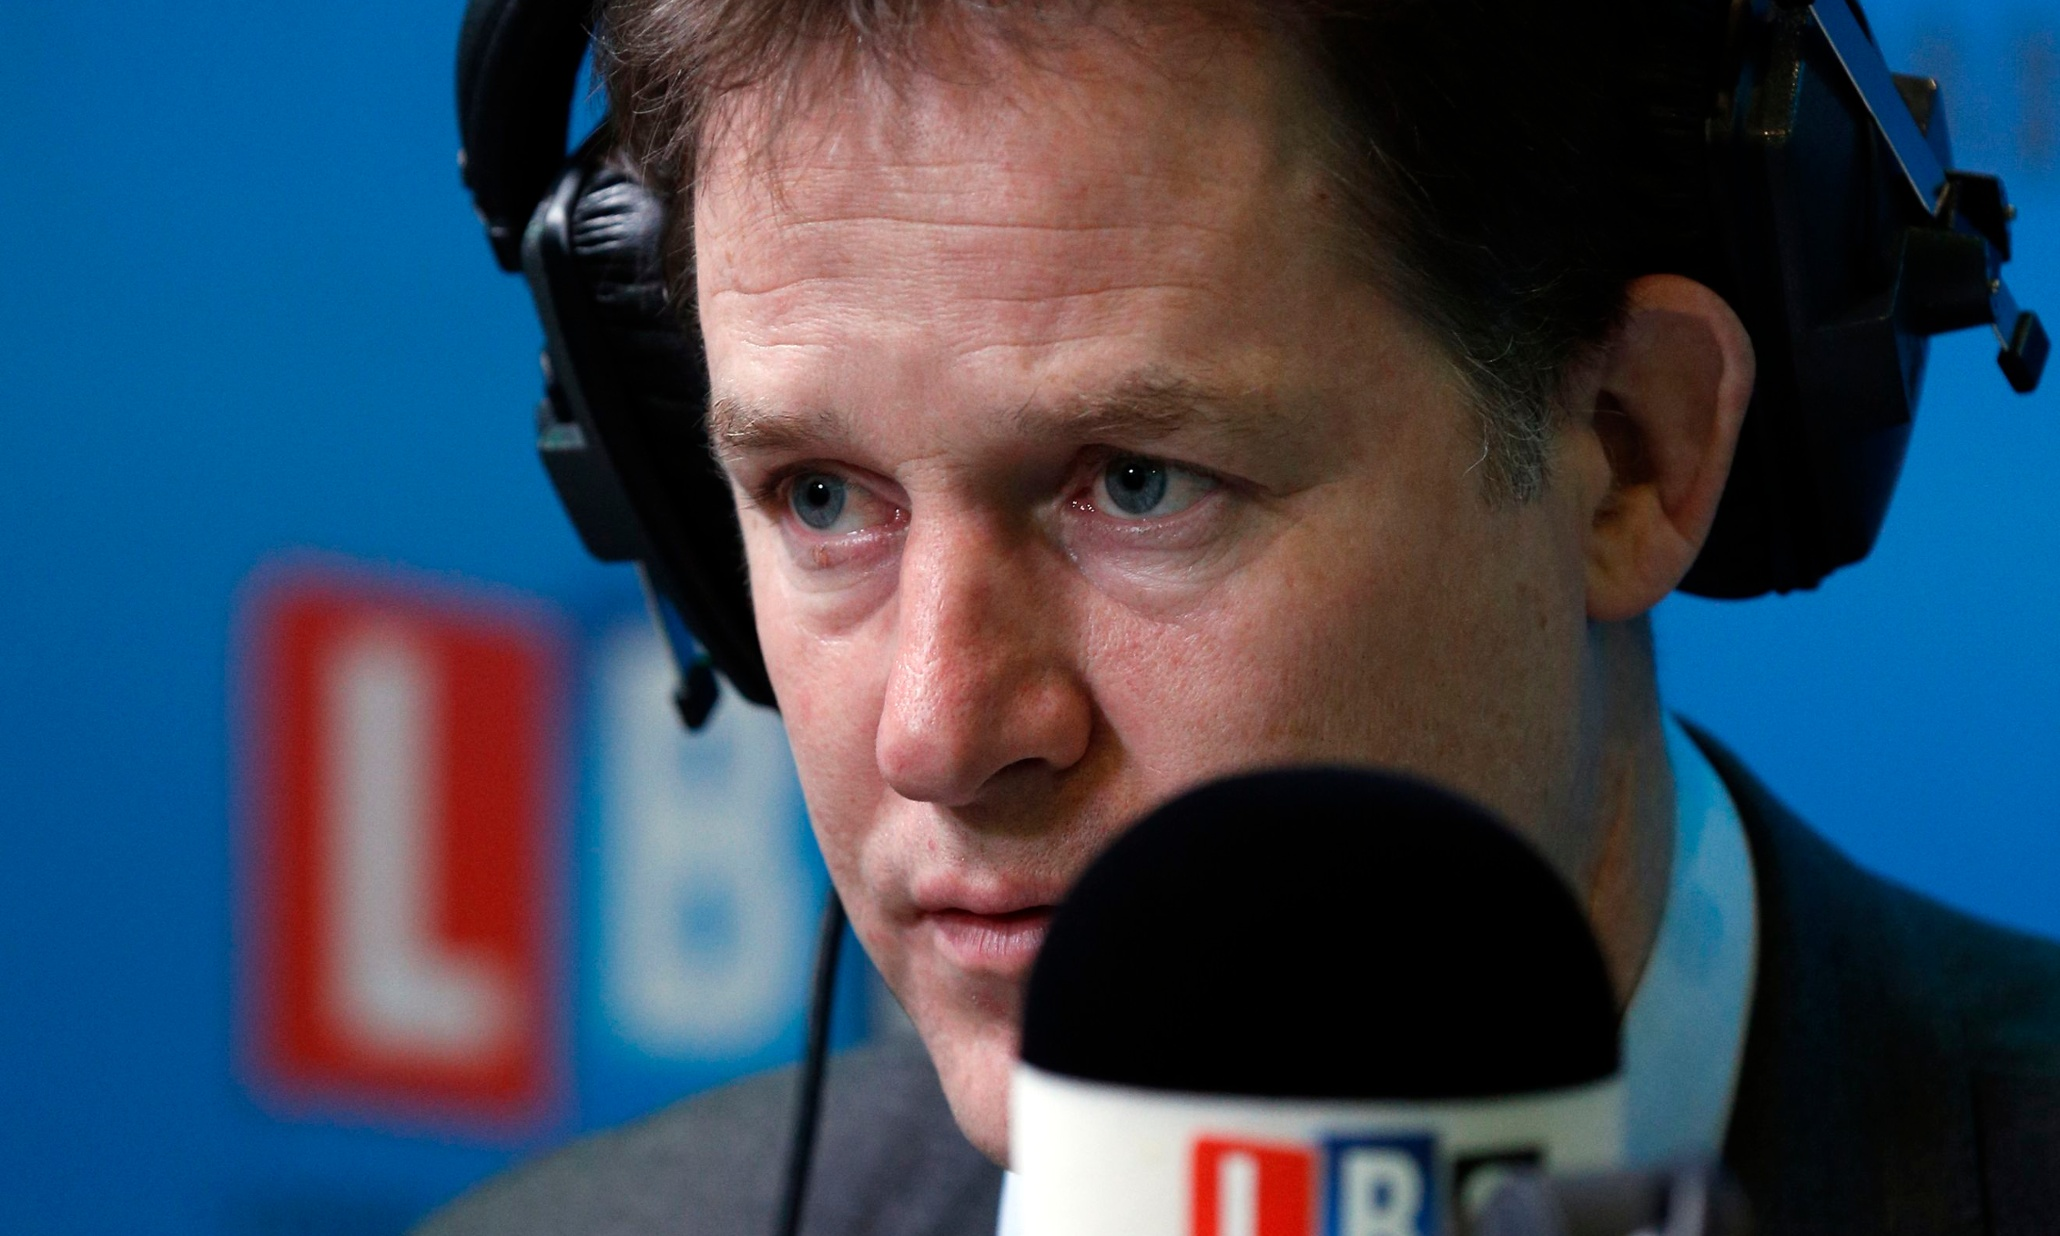 Farage irresponsibly mixing fears over extremism and immigration, says Clegg